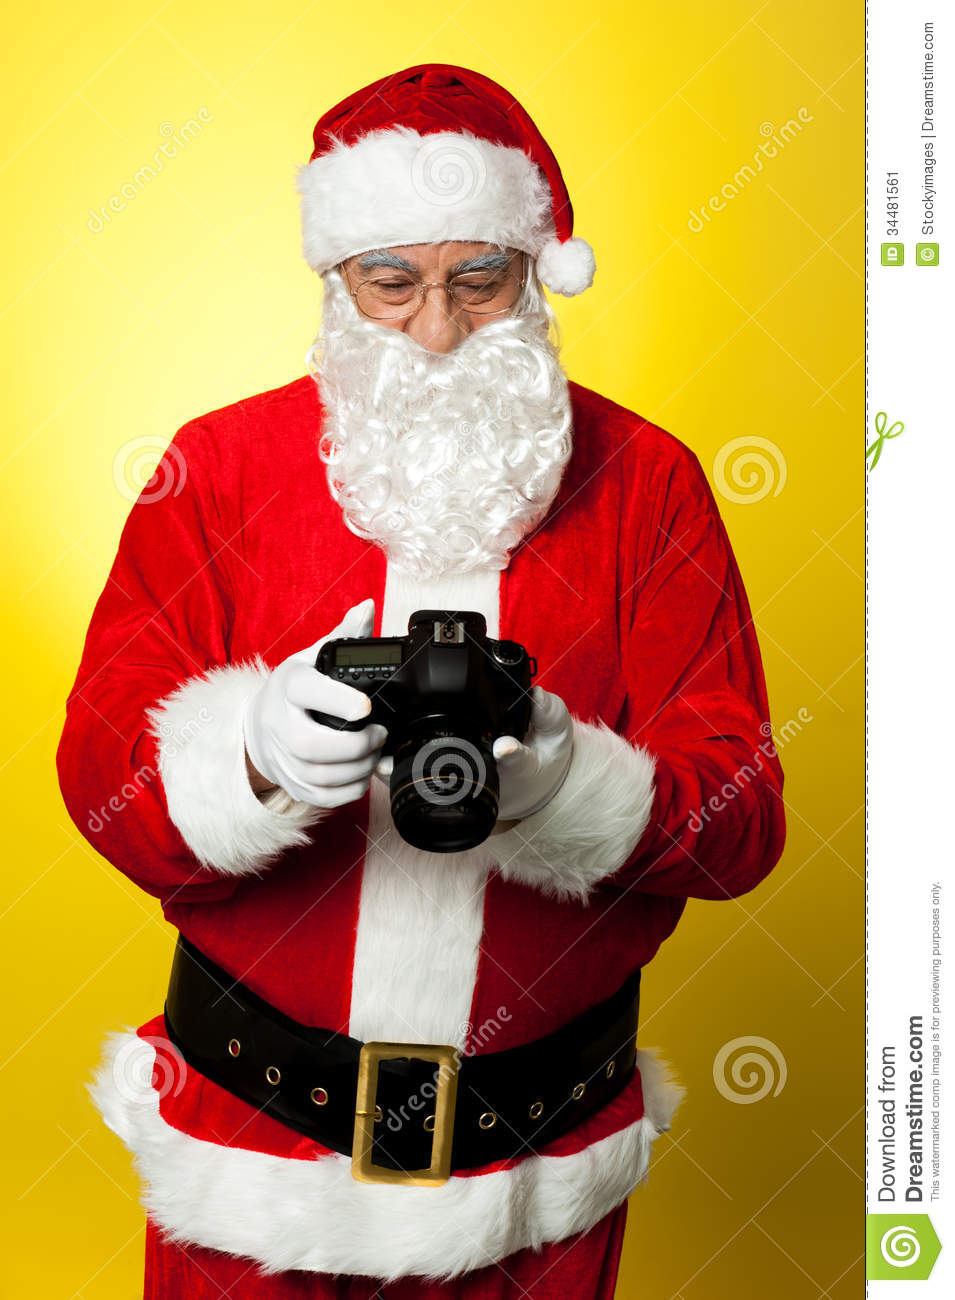 Santa Checking Pictures On His DSLR Camera Stock Image